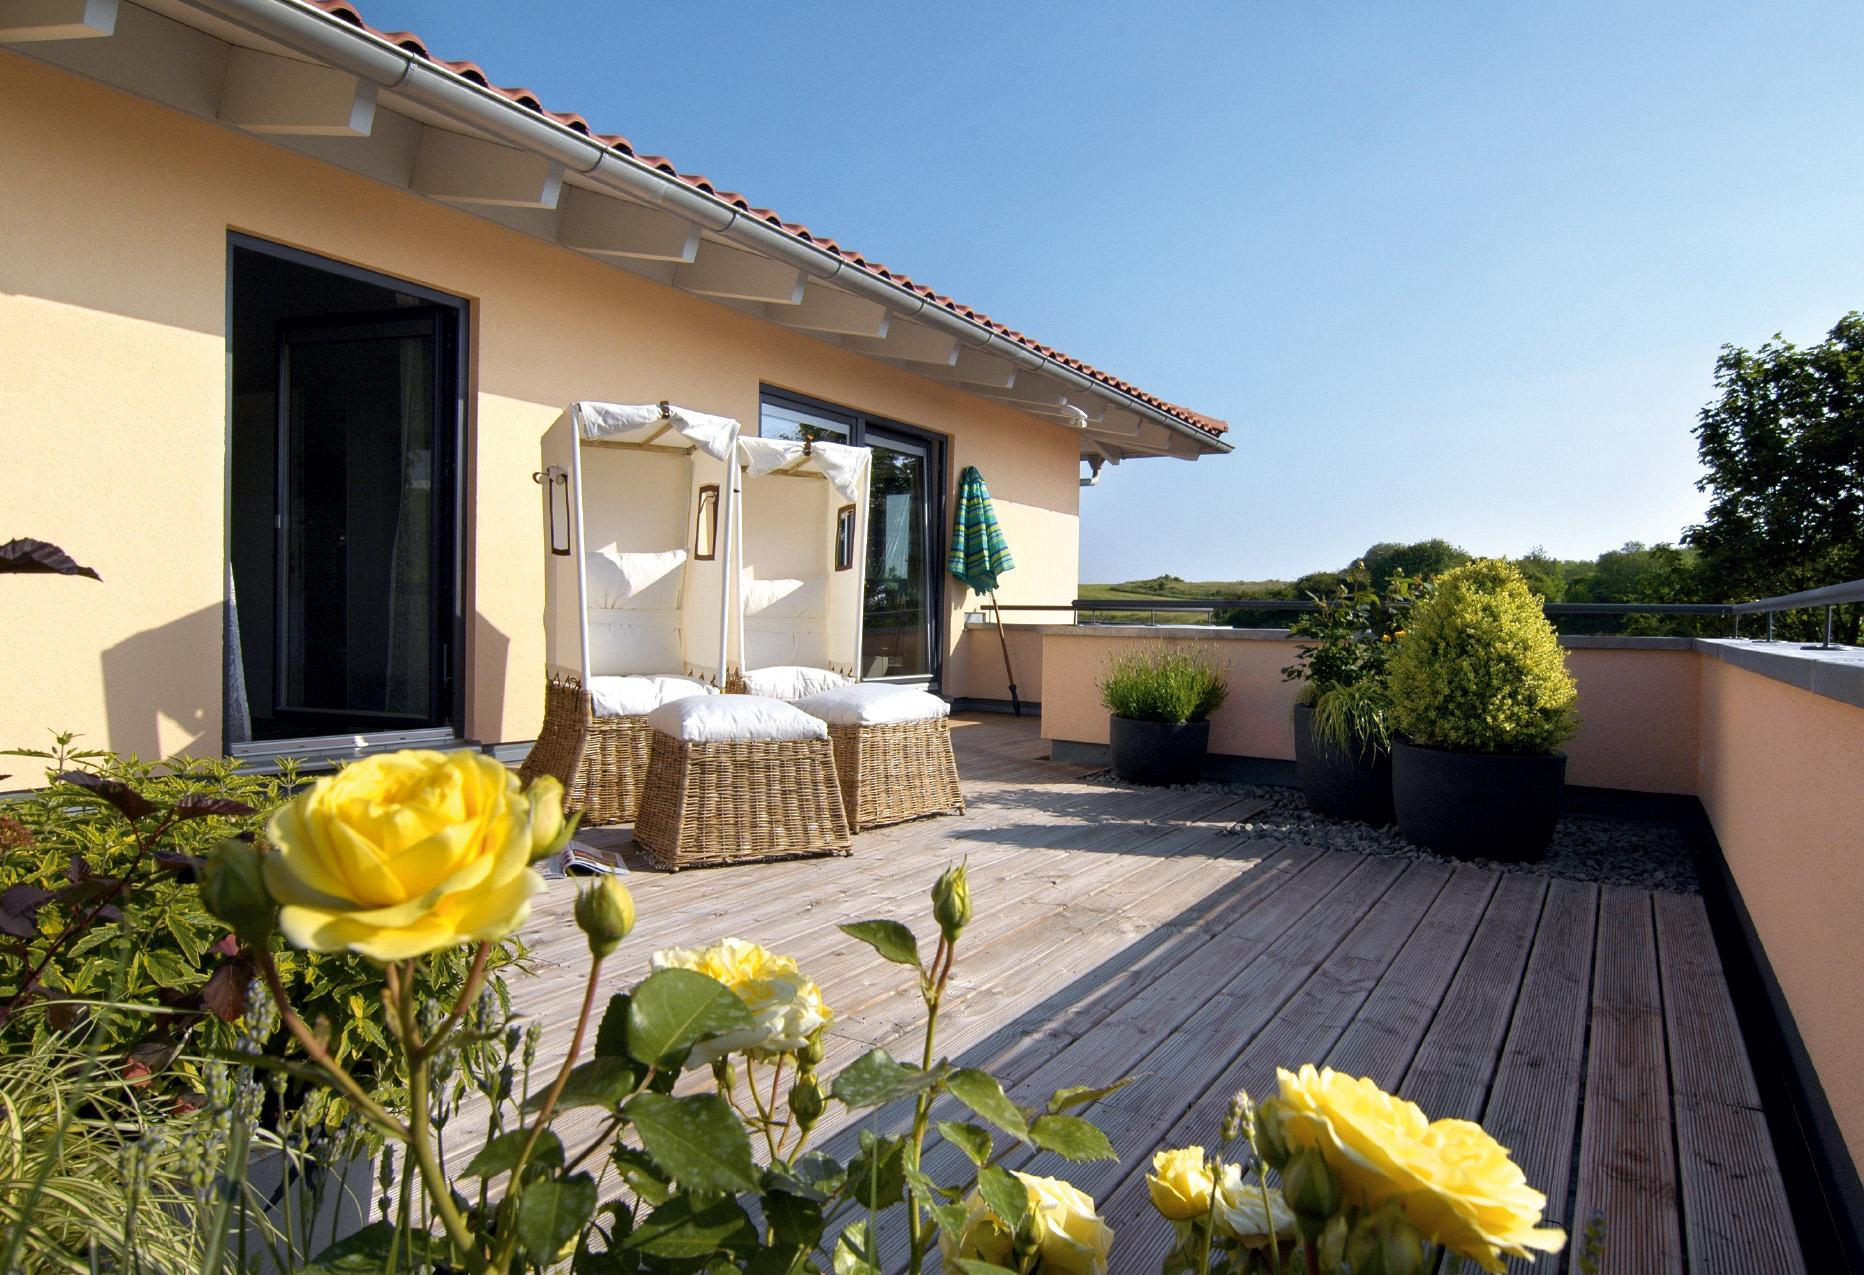 Mediterranean-style house roof terrace